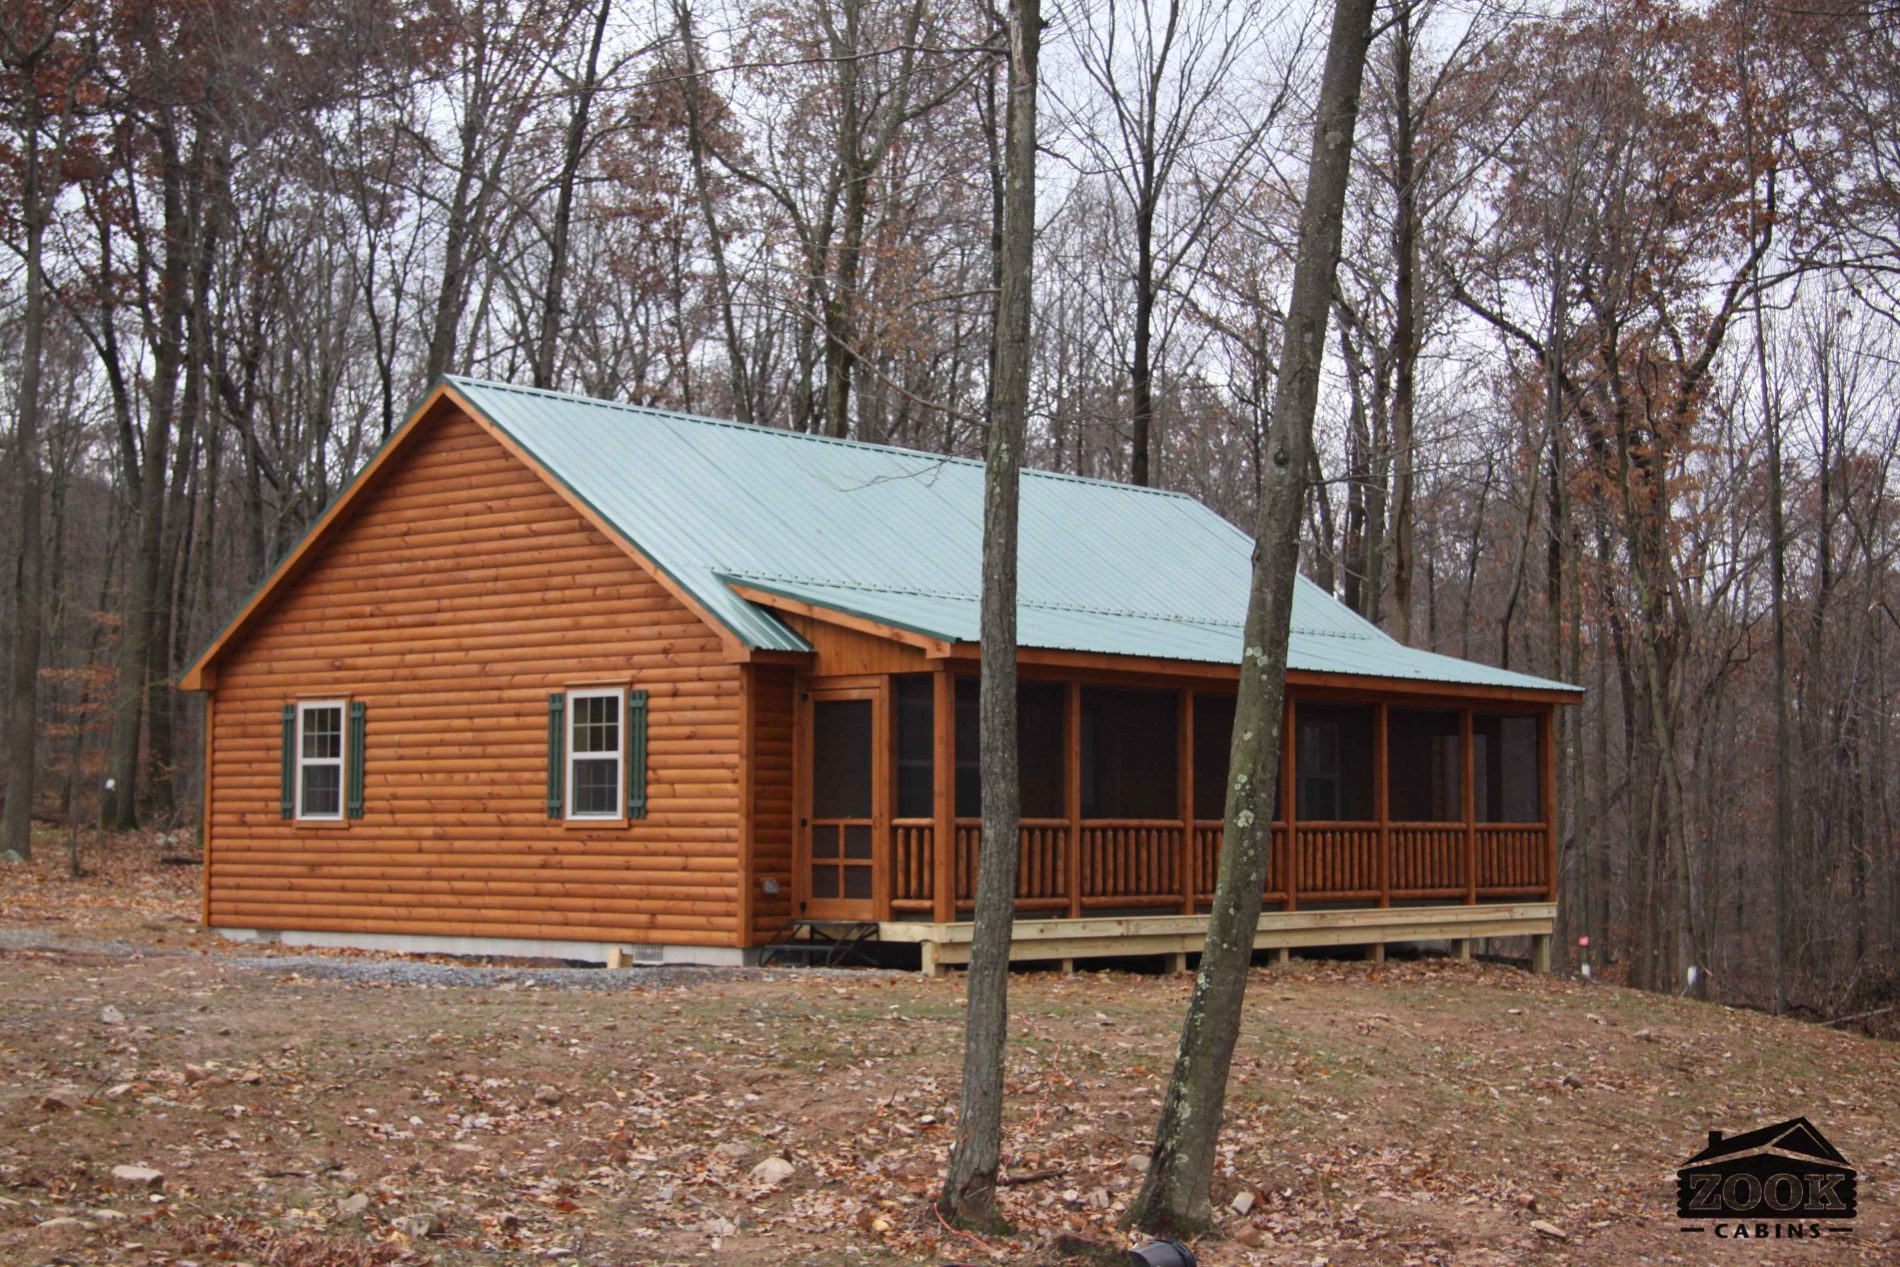 Prefab Rental Cabins Investment Cabins For Sale